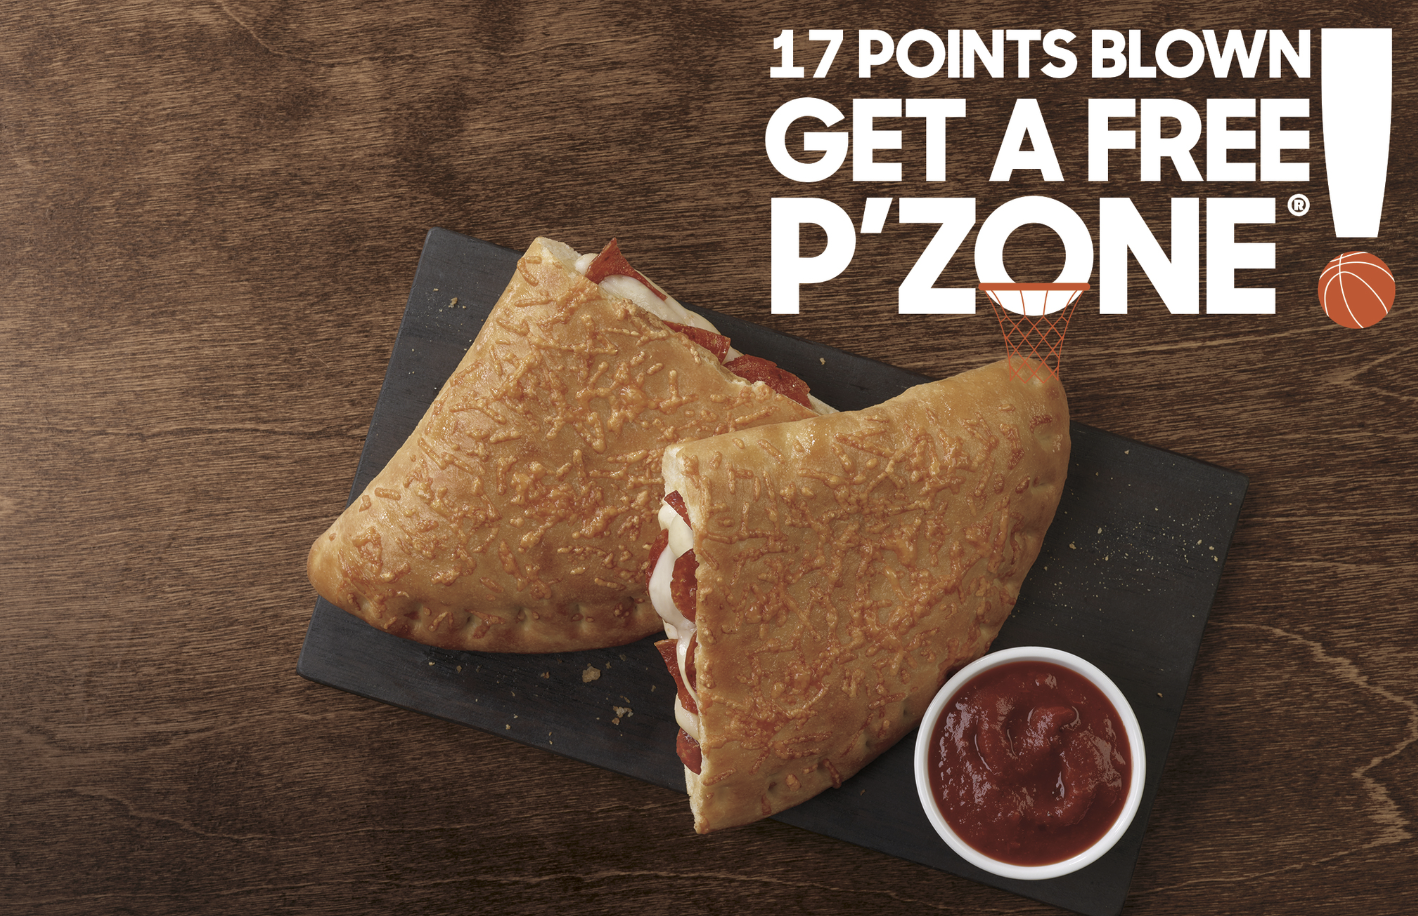 You Could Win A Free P'ZONE From Pizza Hut During The Final Four